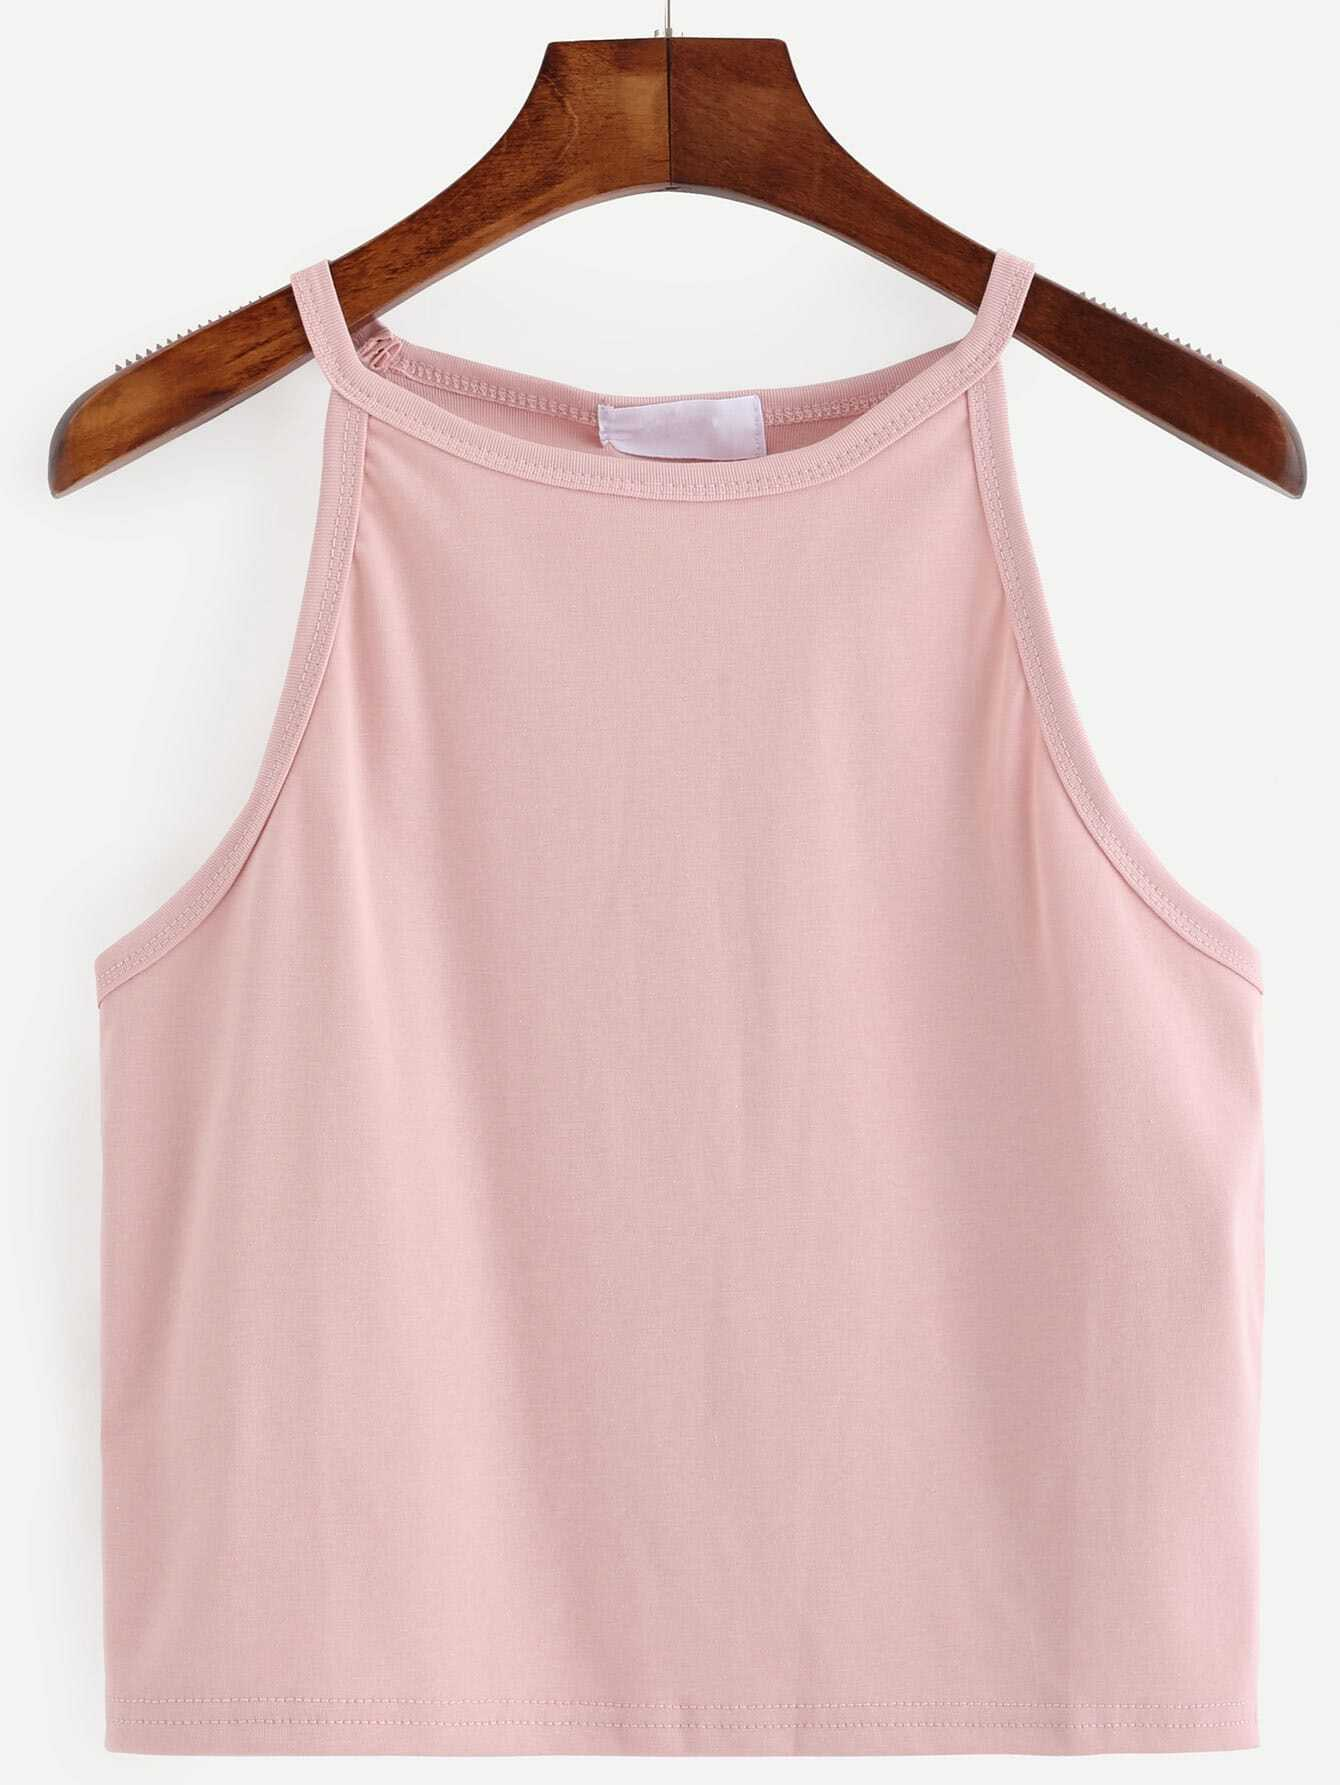 Top Bretelle Couleur Unie Rose French Romwe